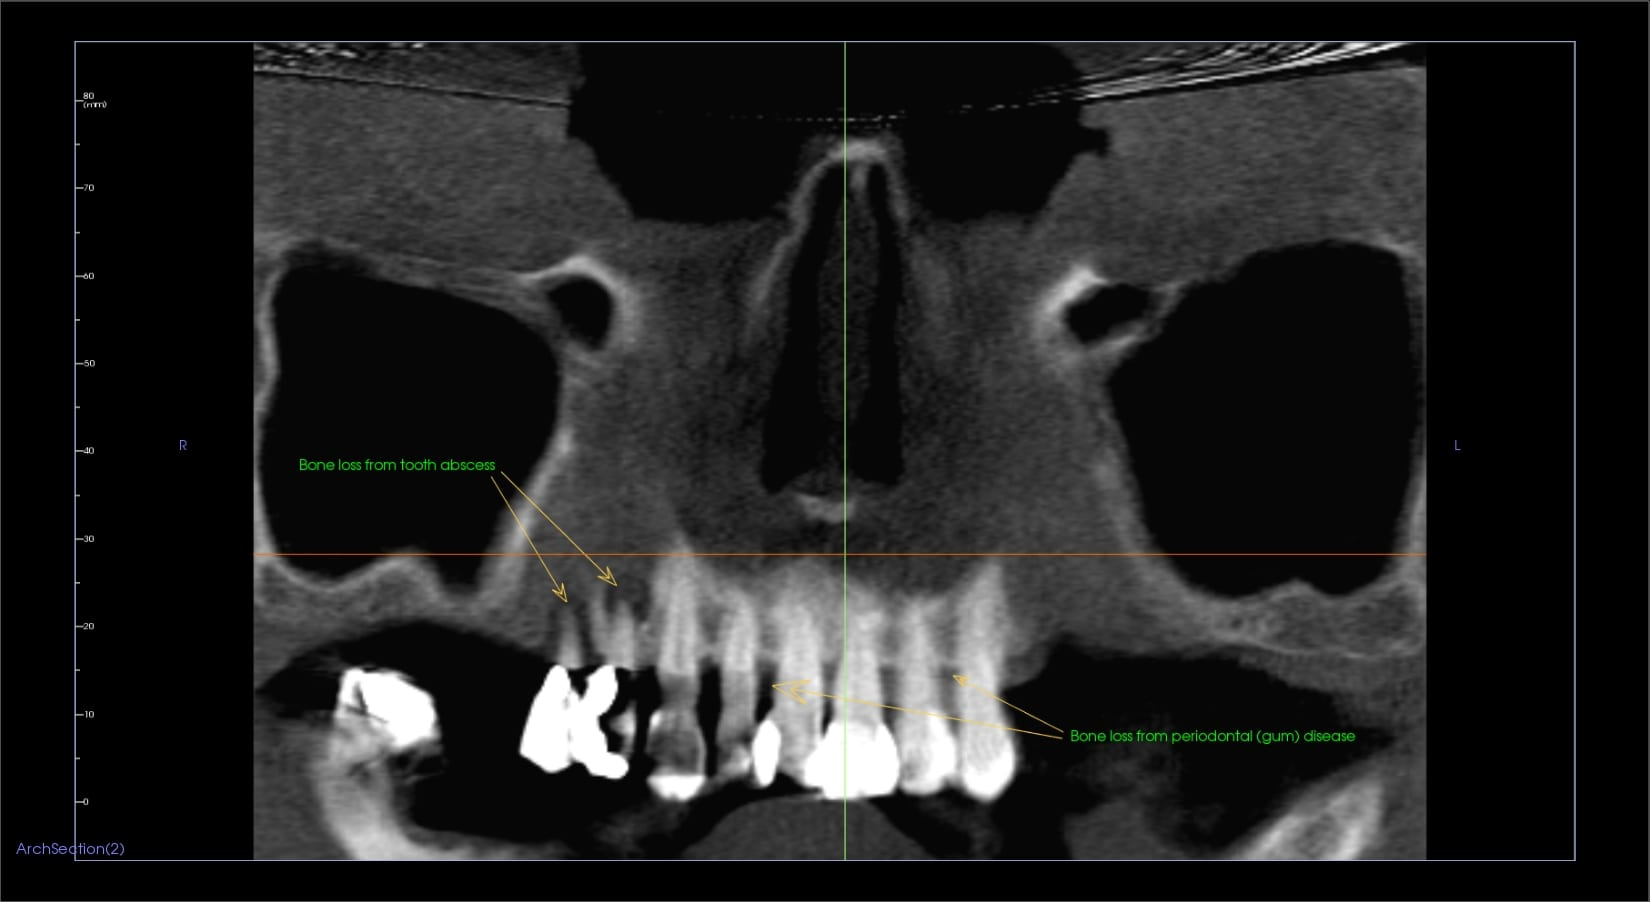 Periodontal (Gum) Disease & Tooth Abscess Leading To Bone Loss